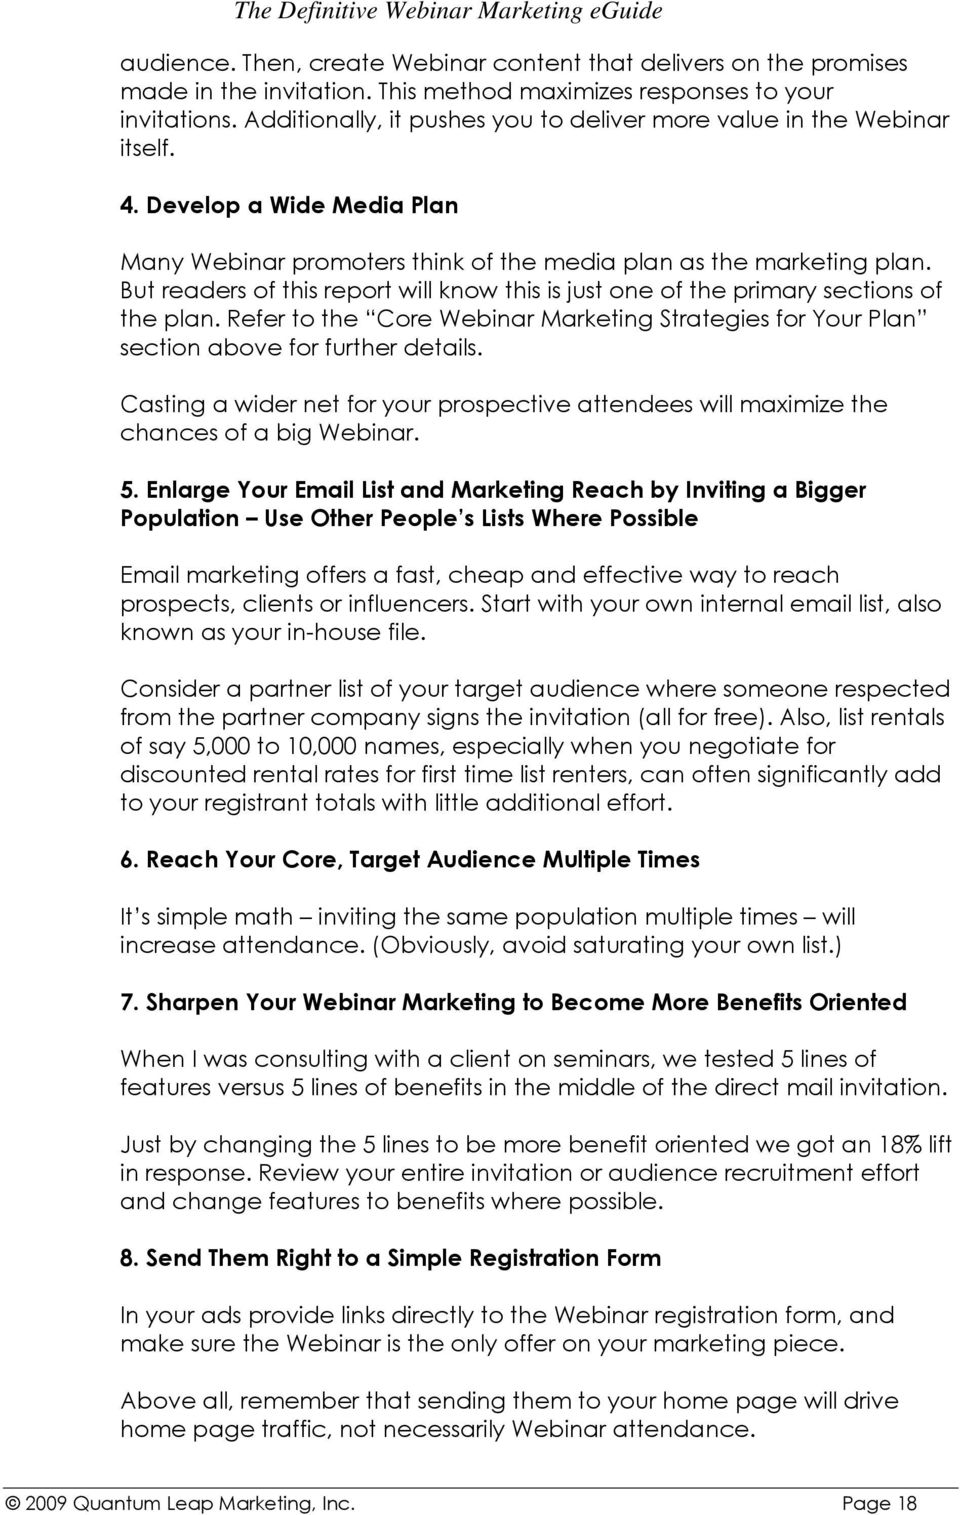 But readers of this report will know this is just one of the primary sections of the plan. Refer to the Core Webinar Marketing Strategies for Your Plan section above for further details.